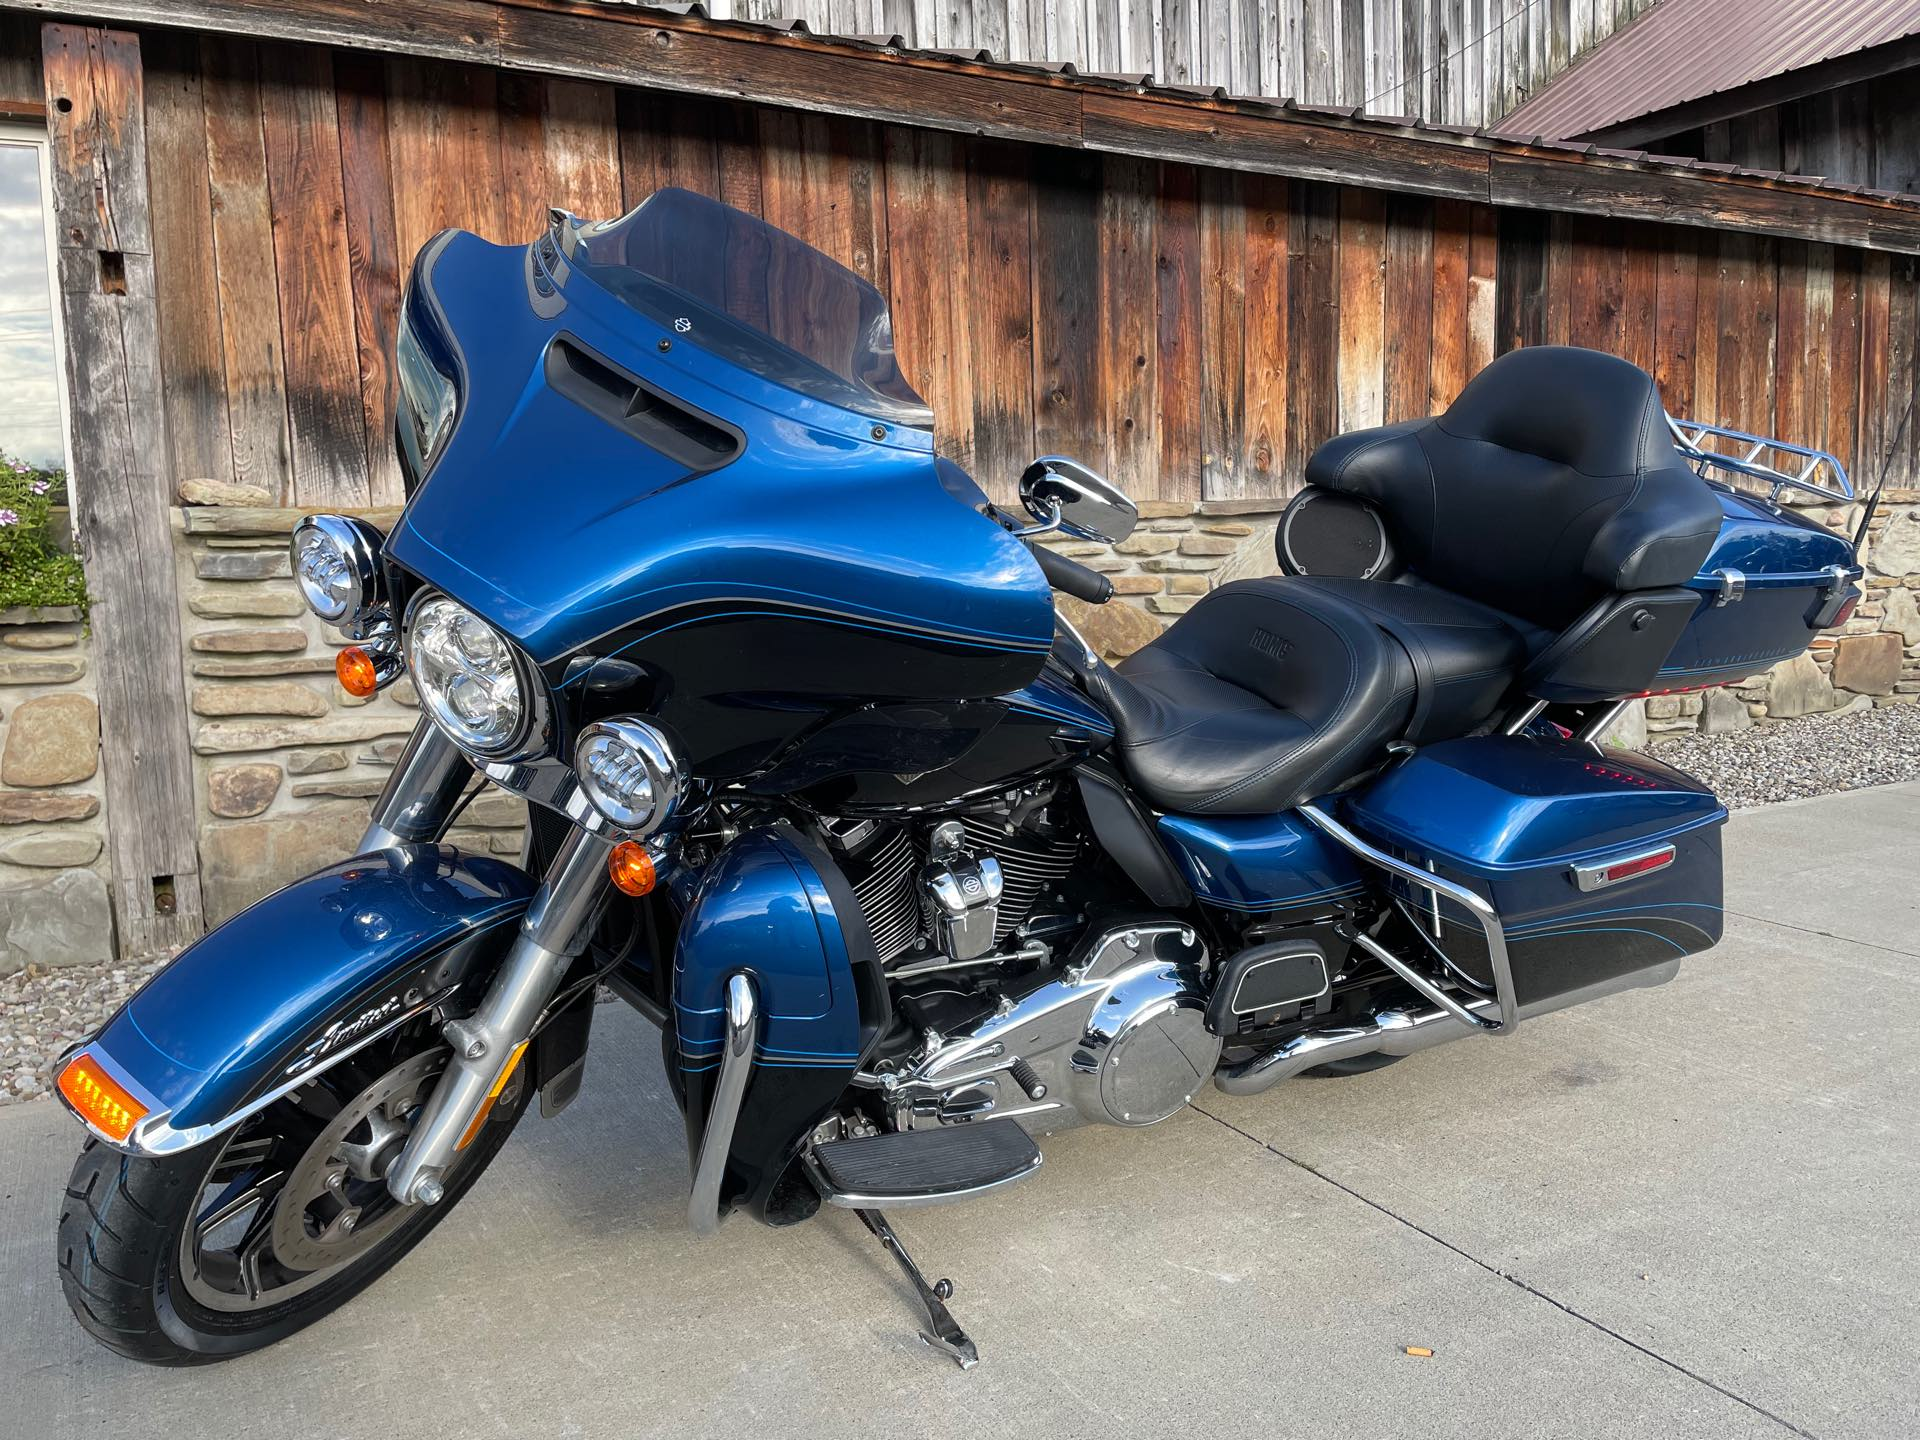 2018 Harley-Davidson Electra Glide Ultra Limited at Arkport Cycles